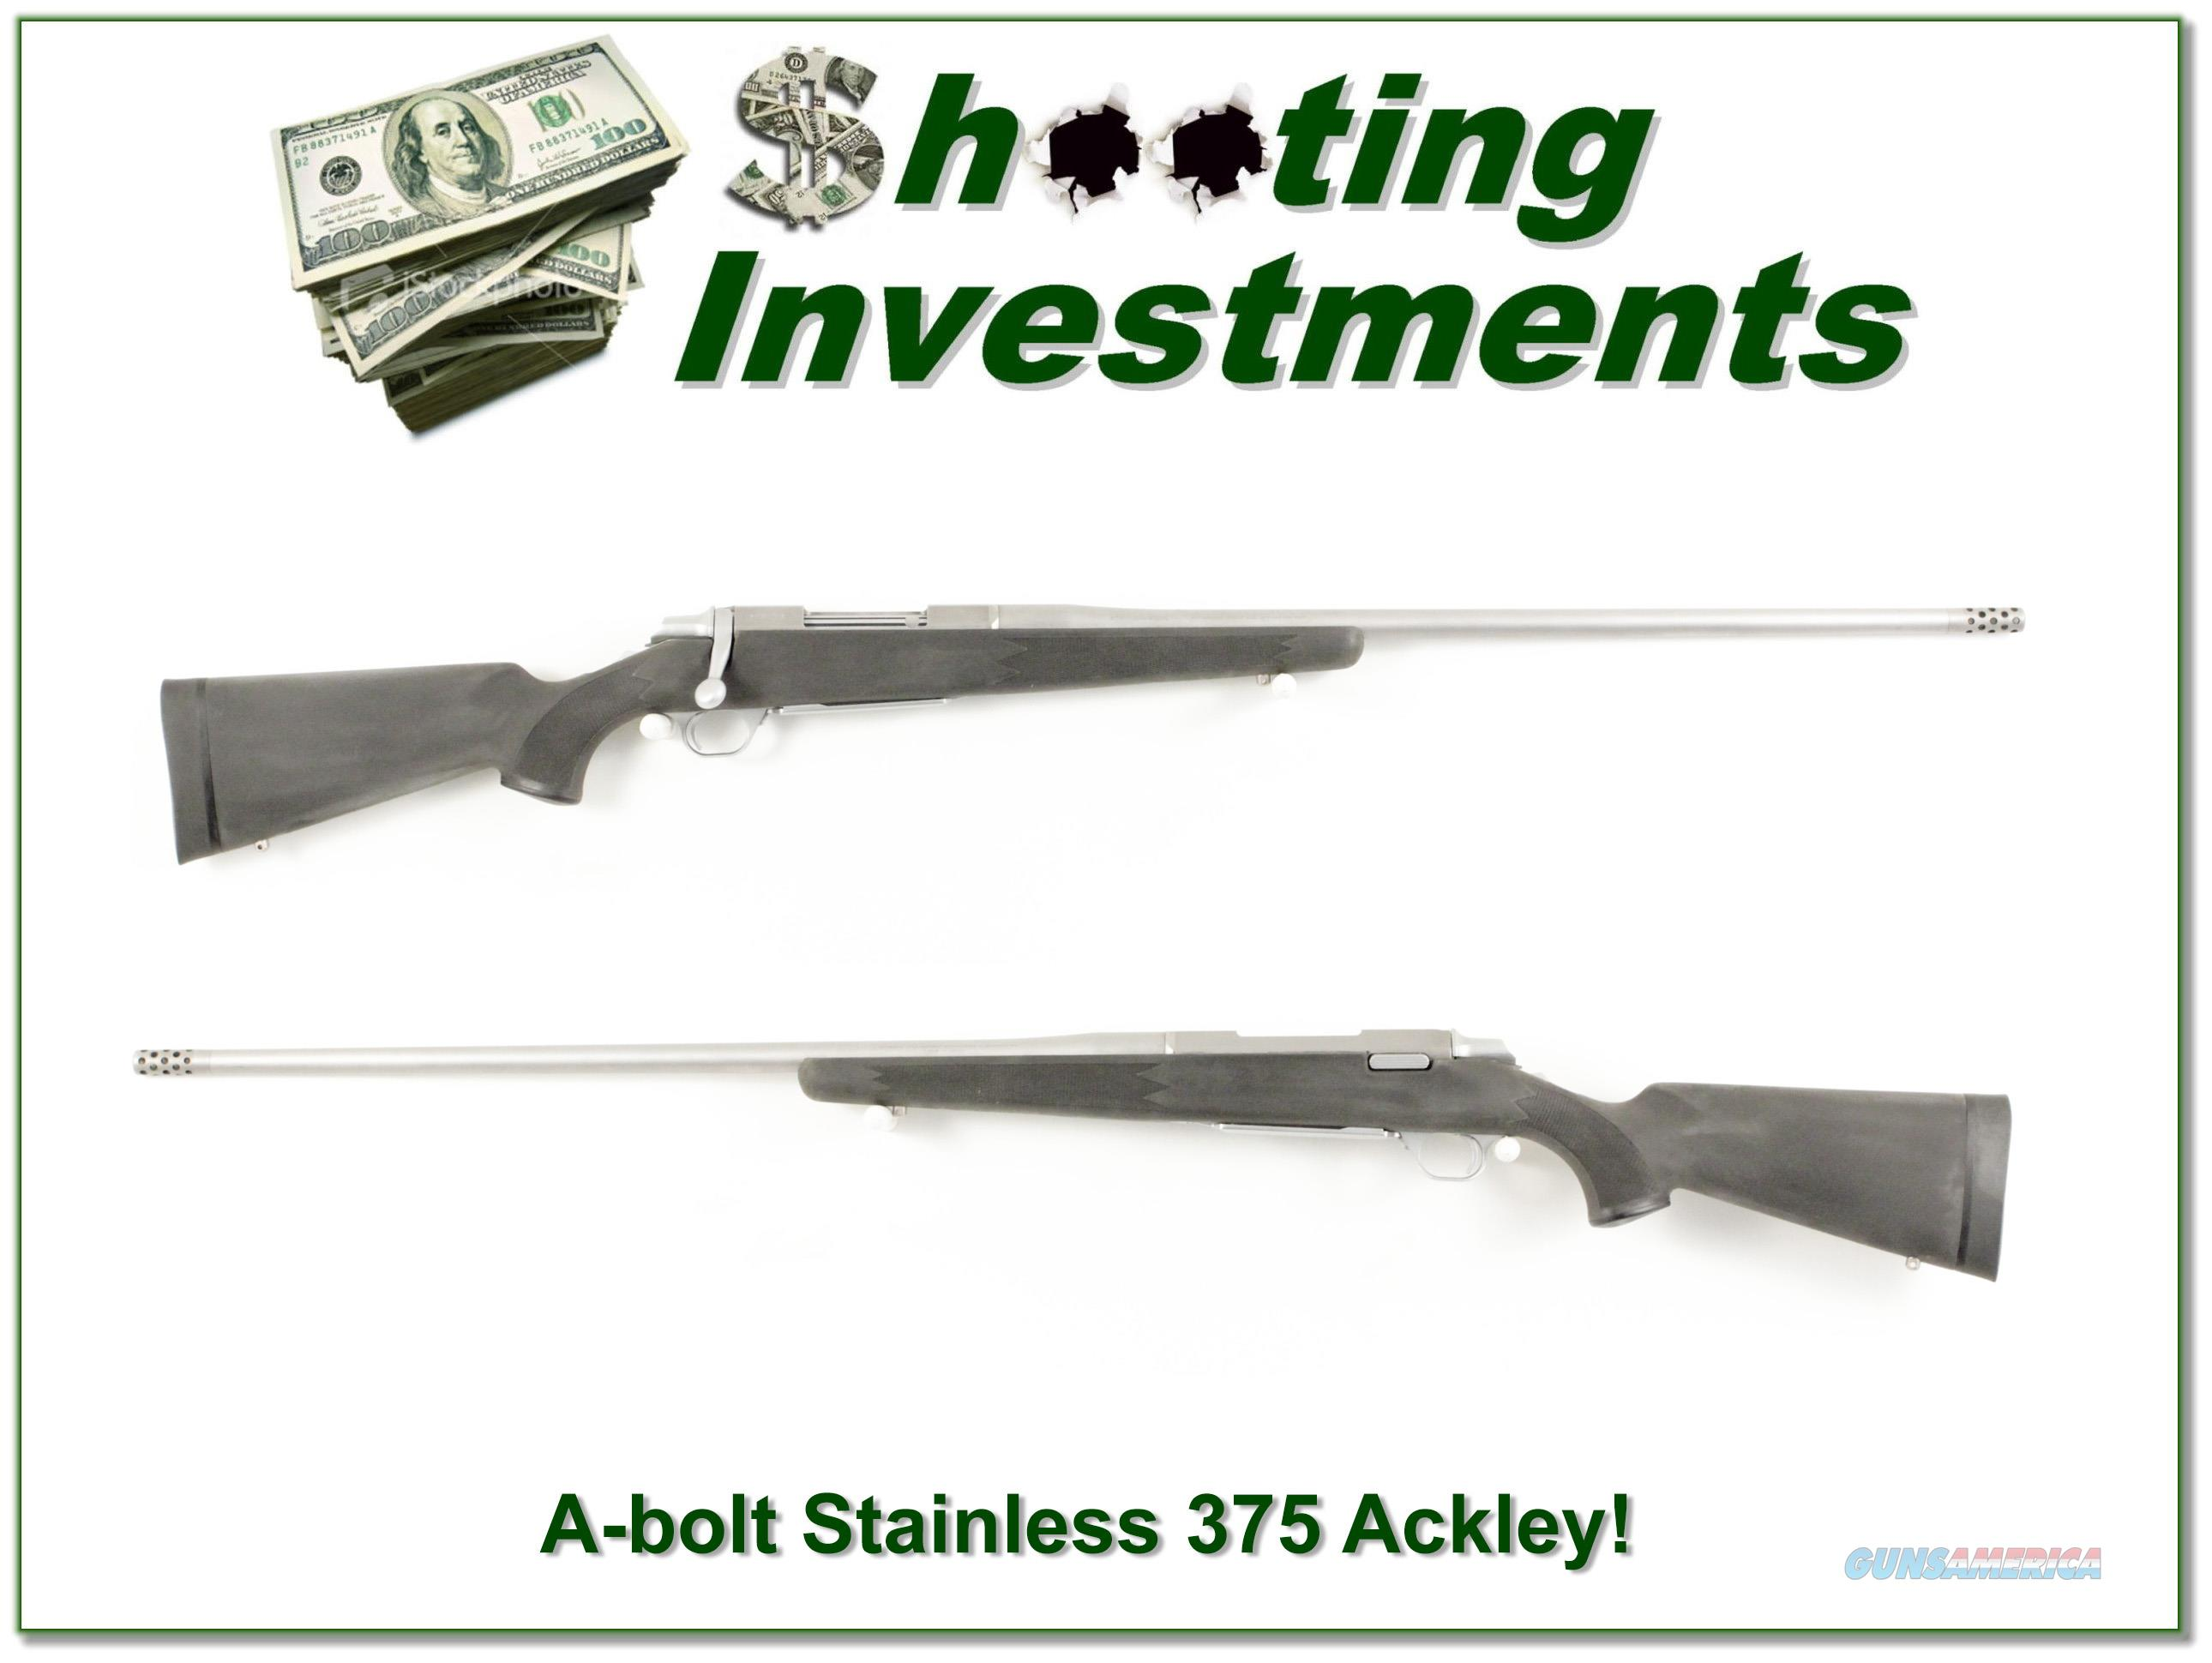 Browning A-bolt Stainless Stalker custom 375 Ackley  Guns > Rifles > Browning Rifles > Bolt Action > Hunting > Stainless